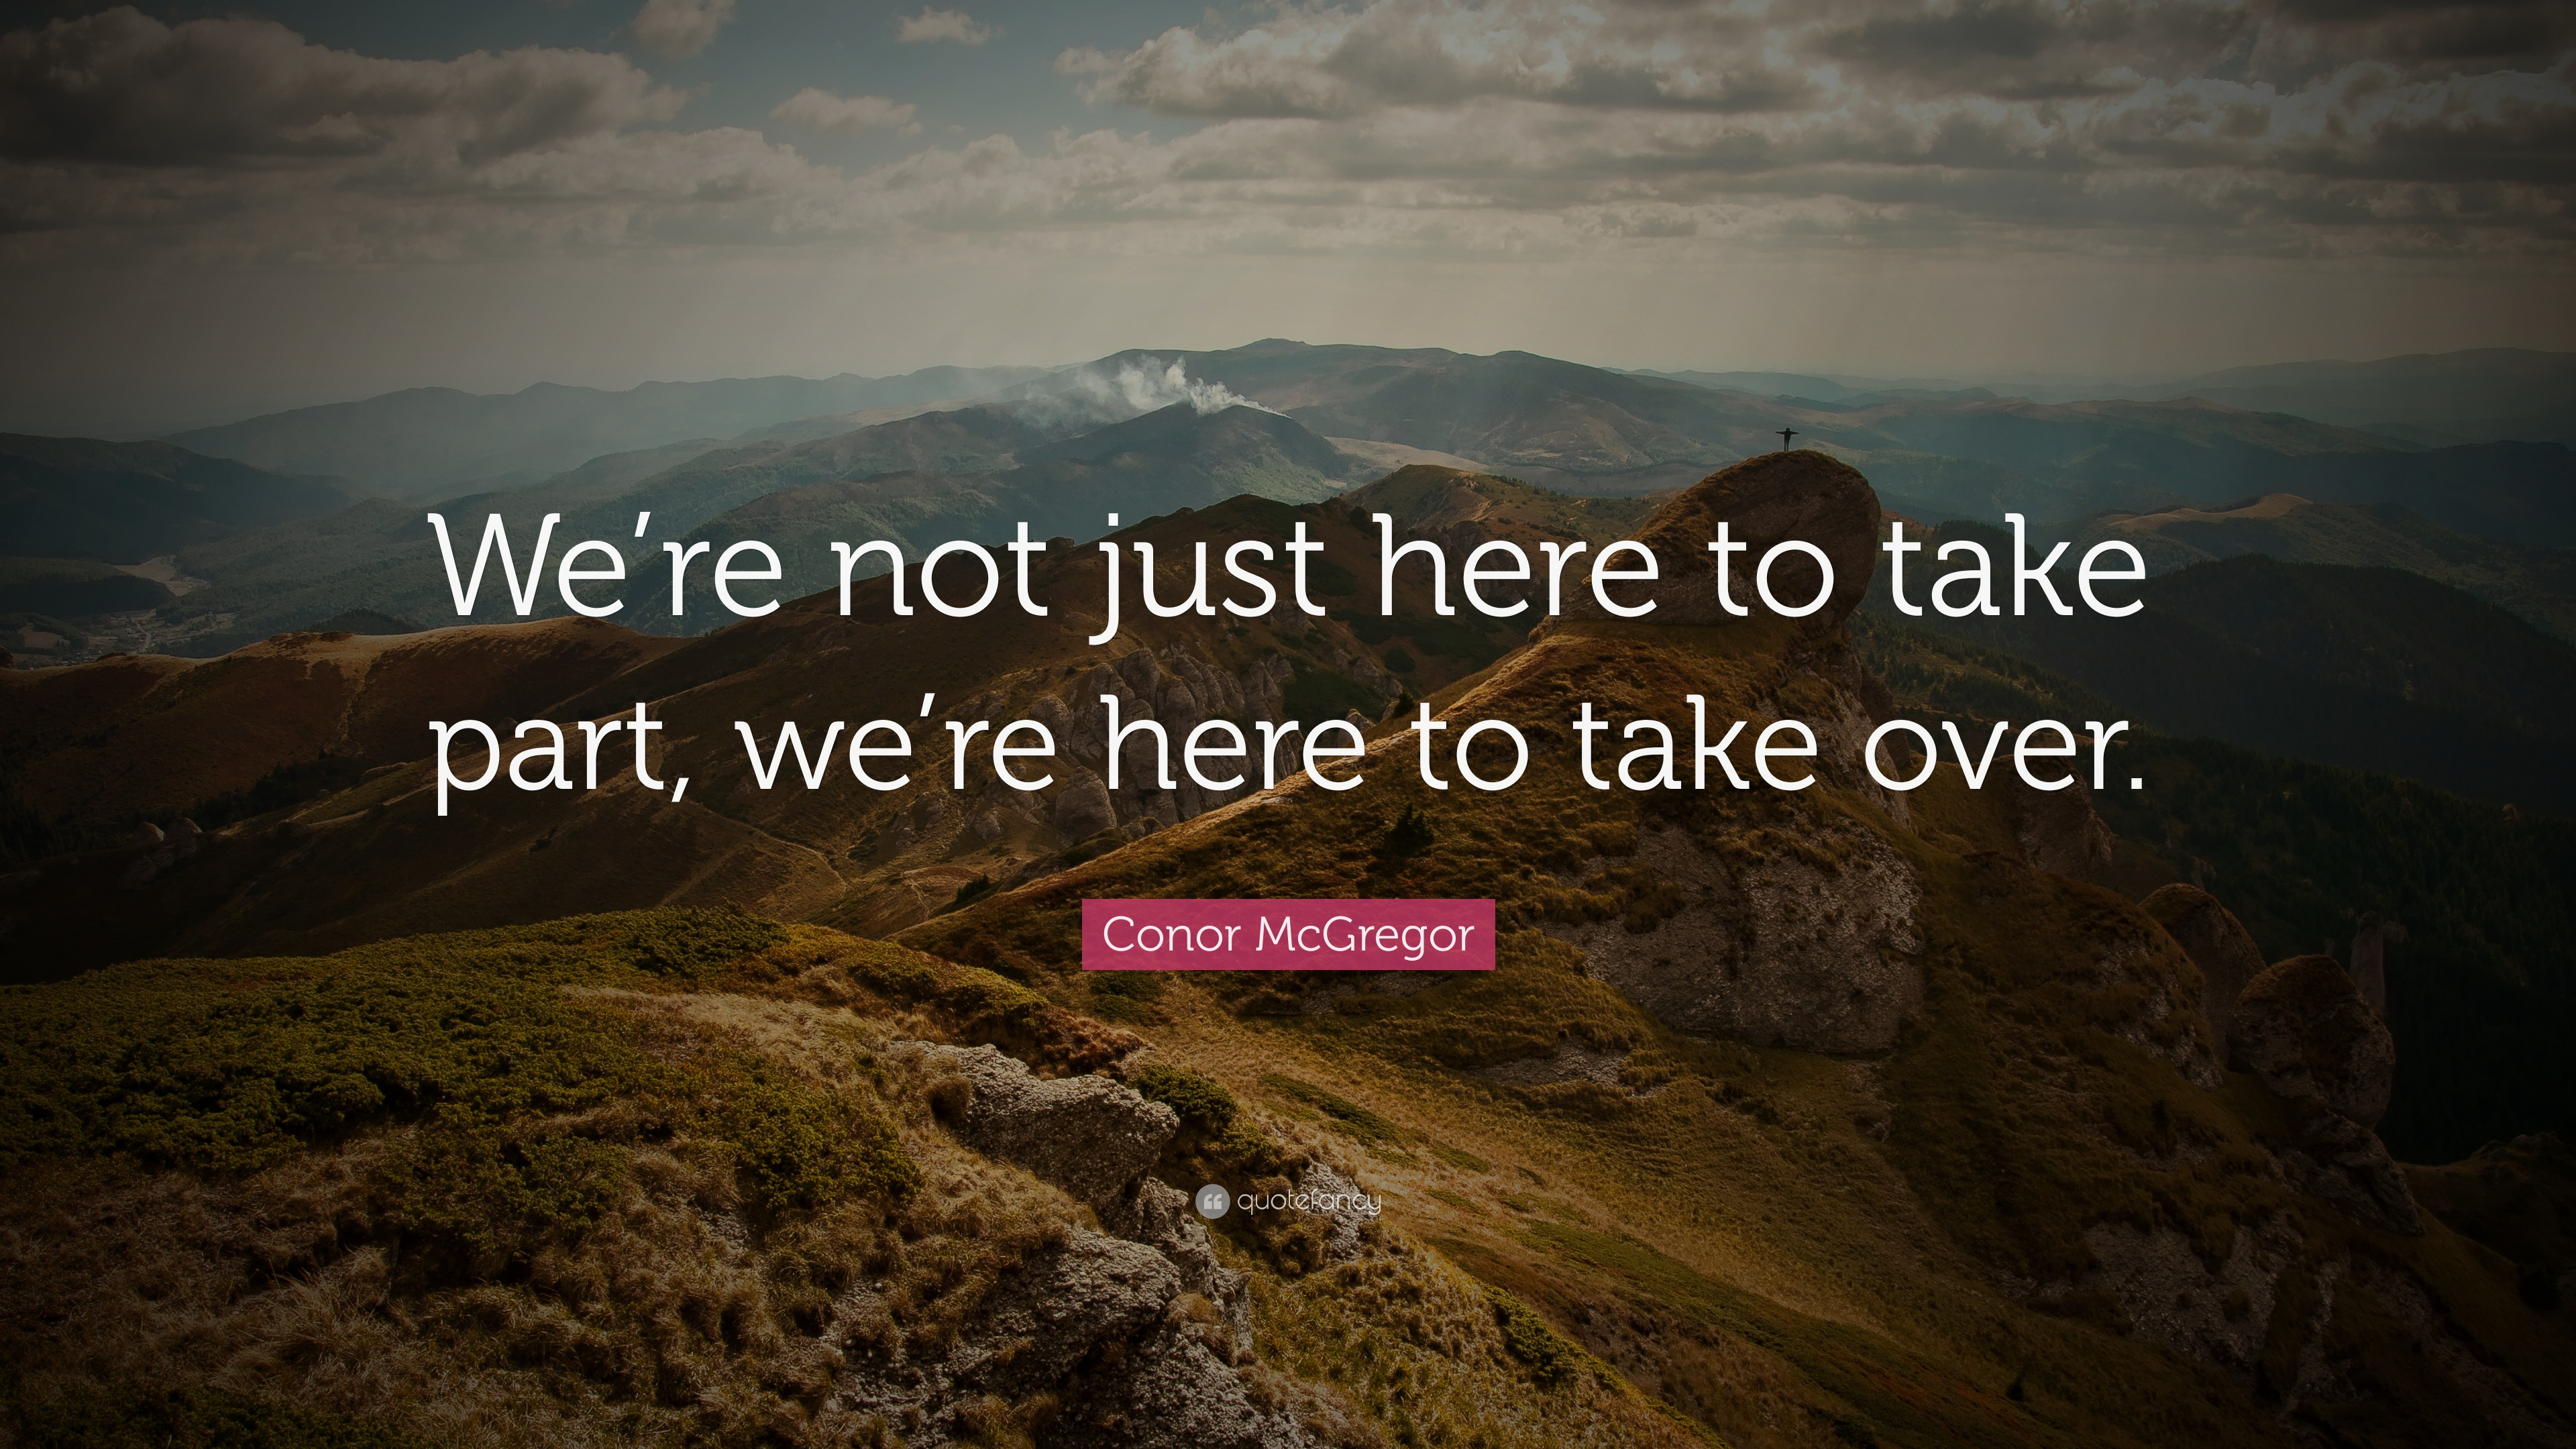 conor mcgregor quote we re not just here to take part we re here